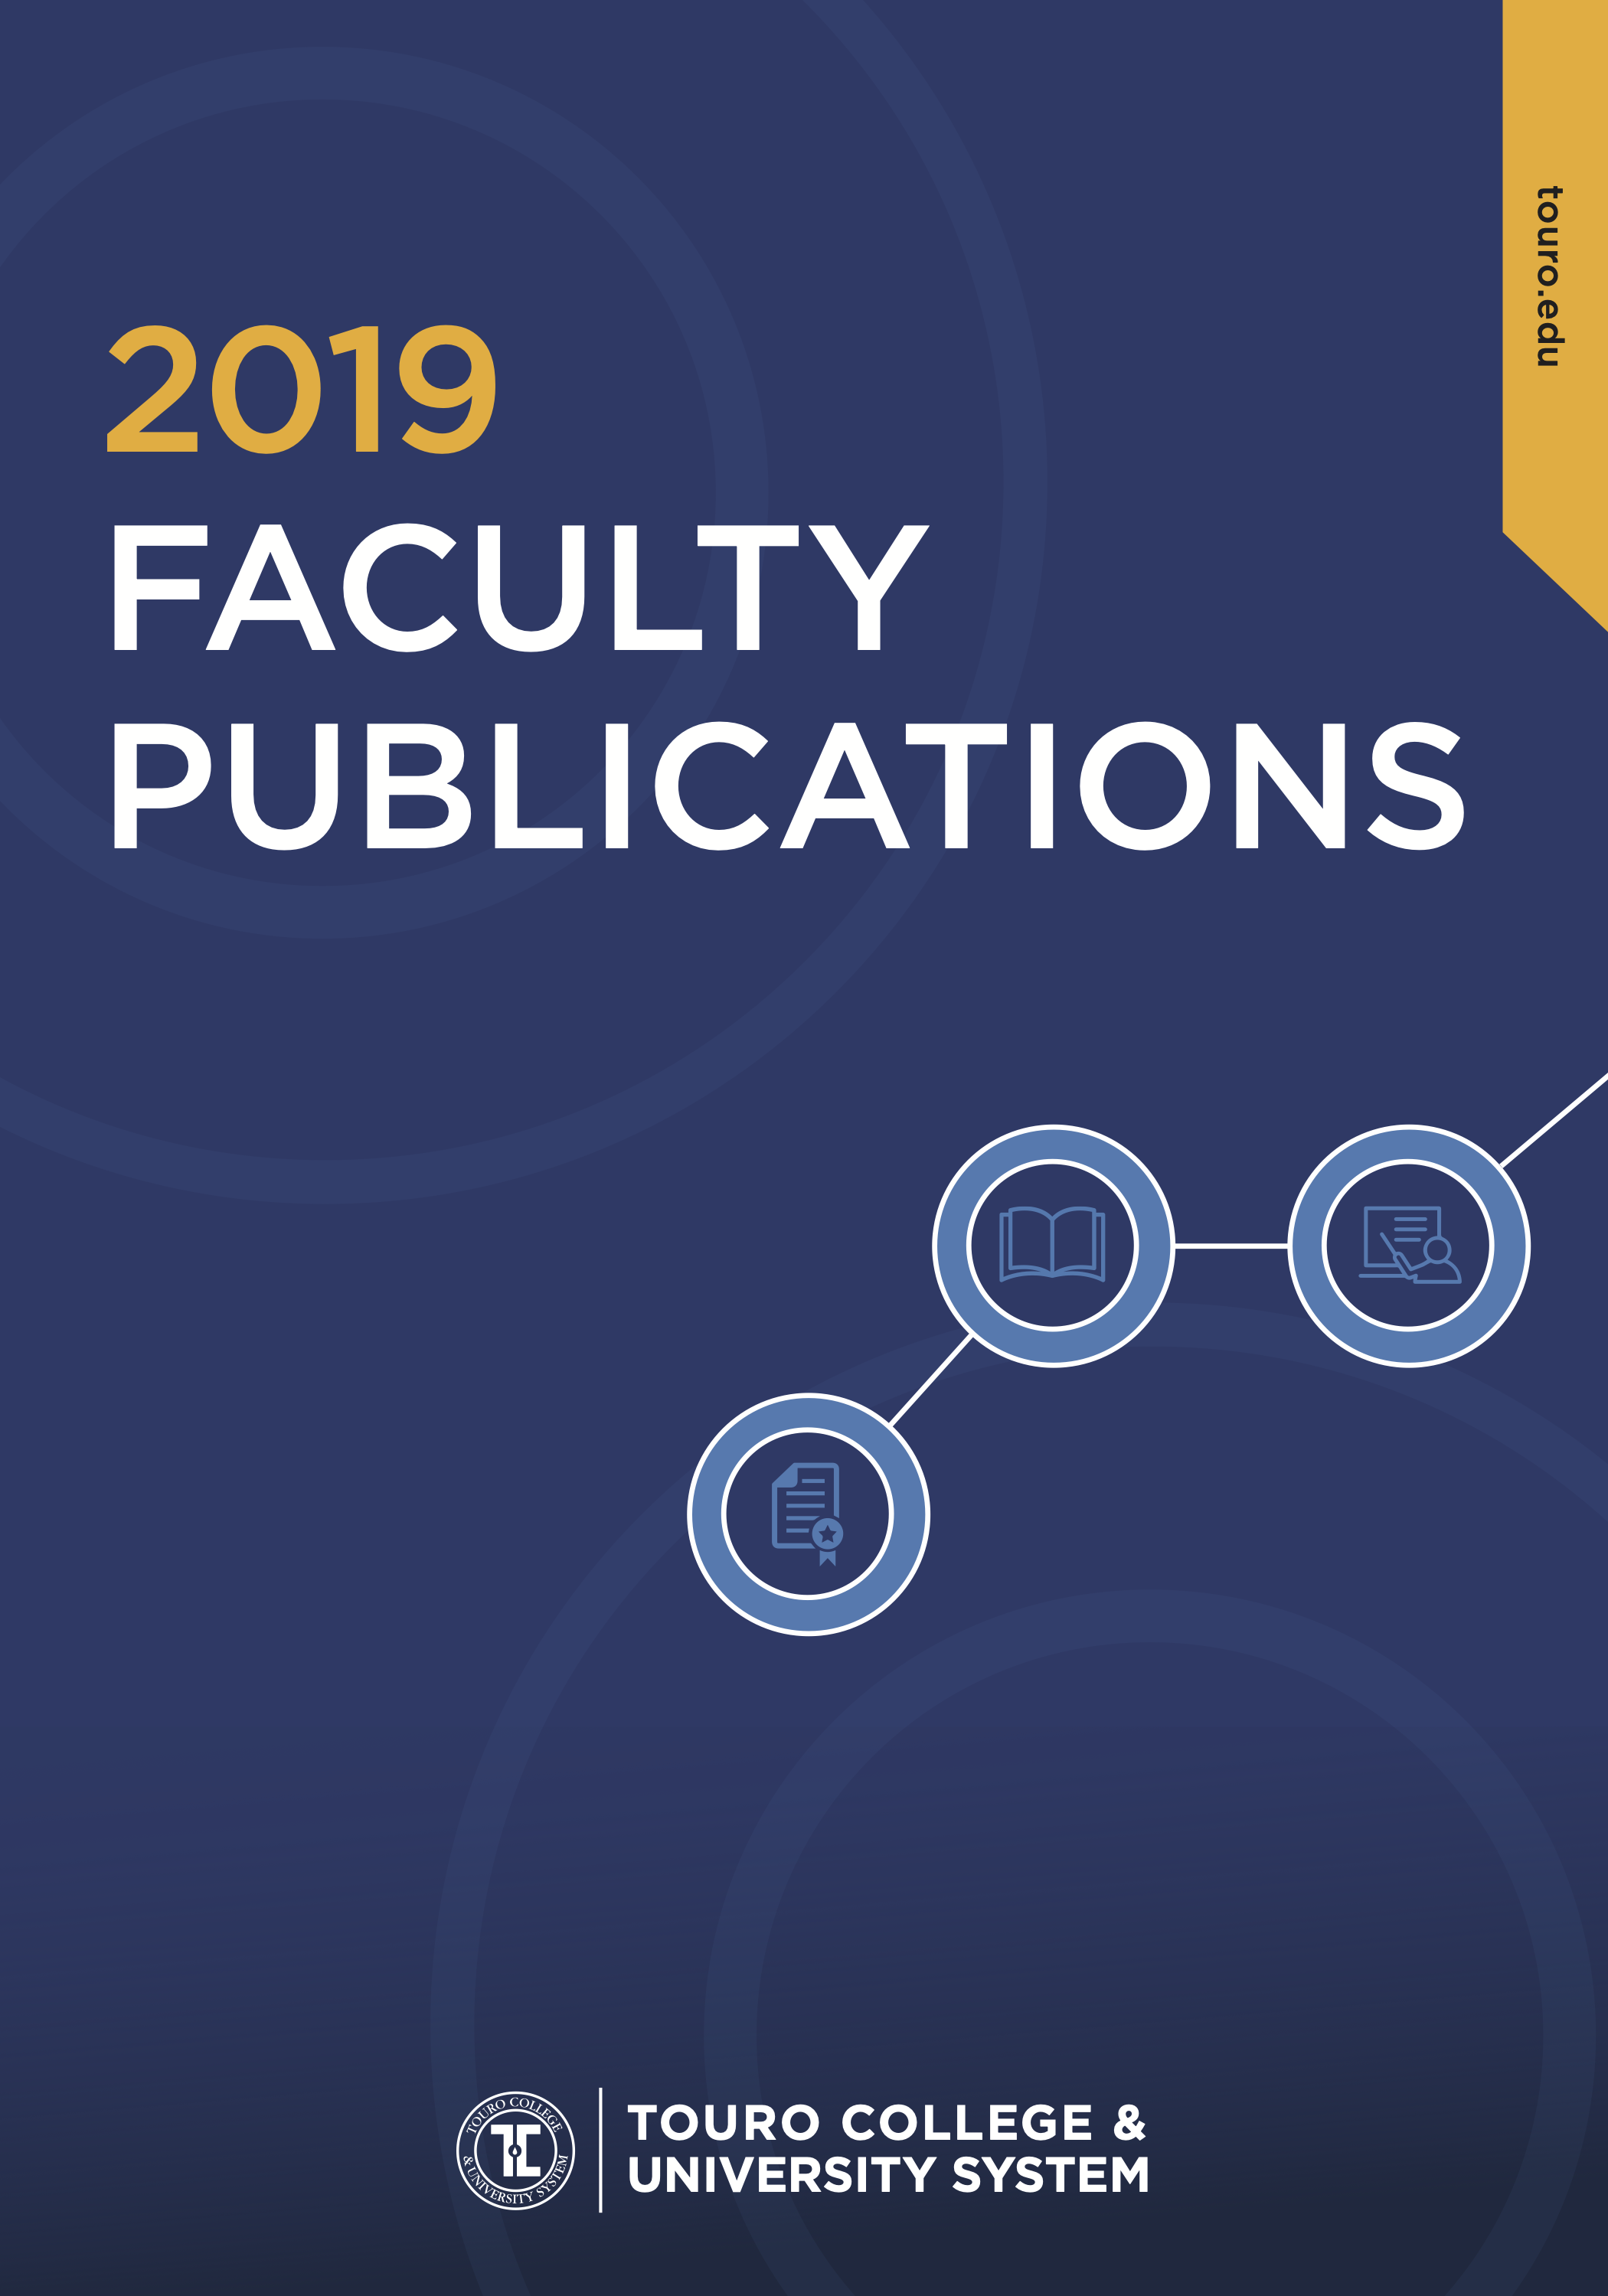 TCUS 2019 Faculty Publications Book